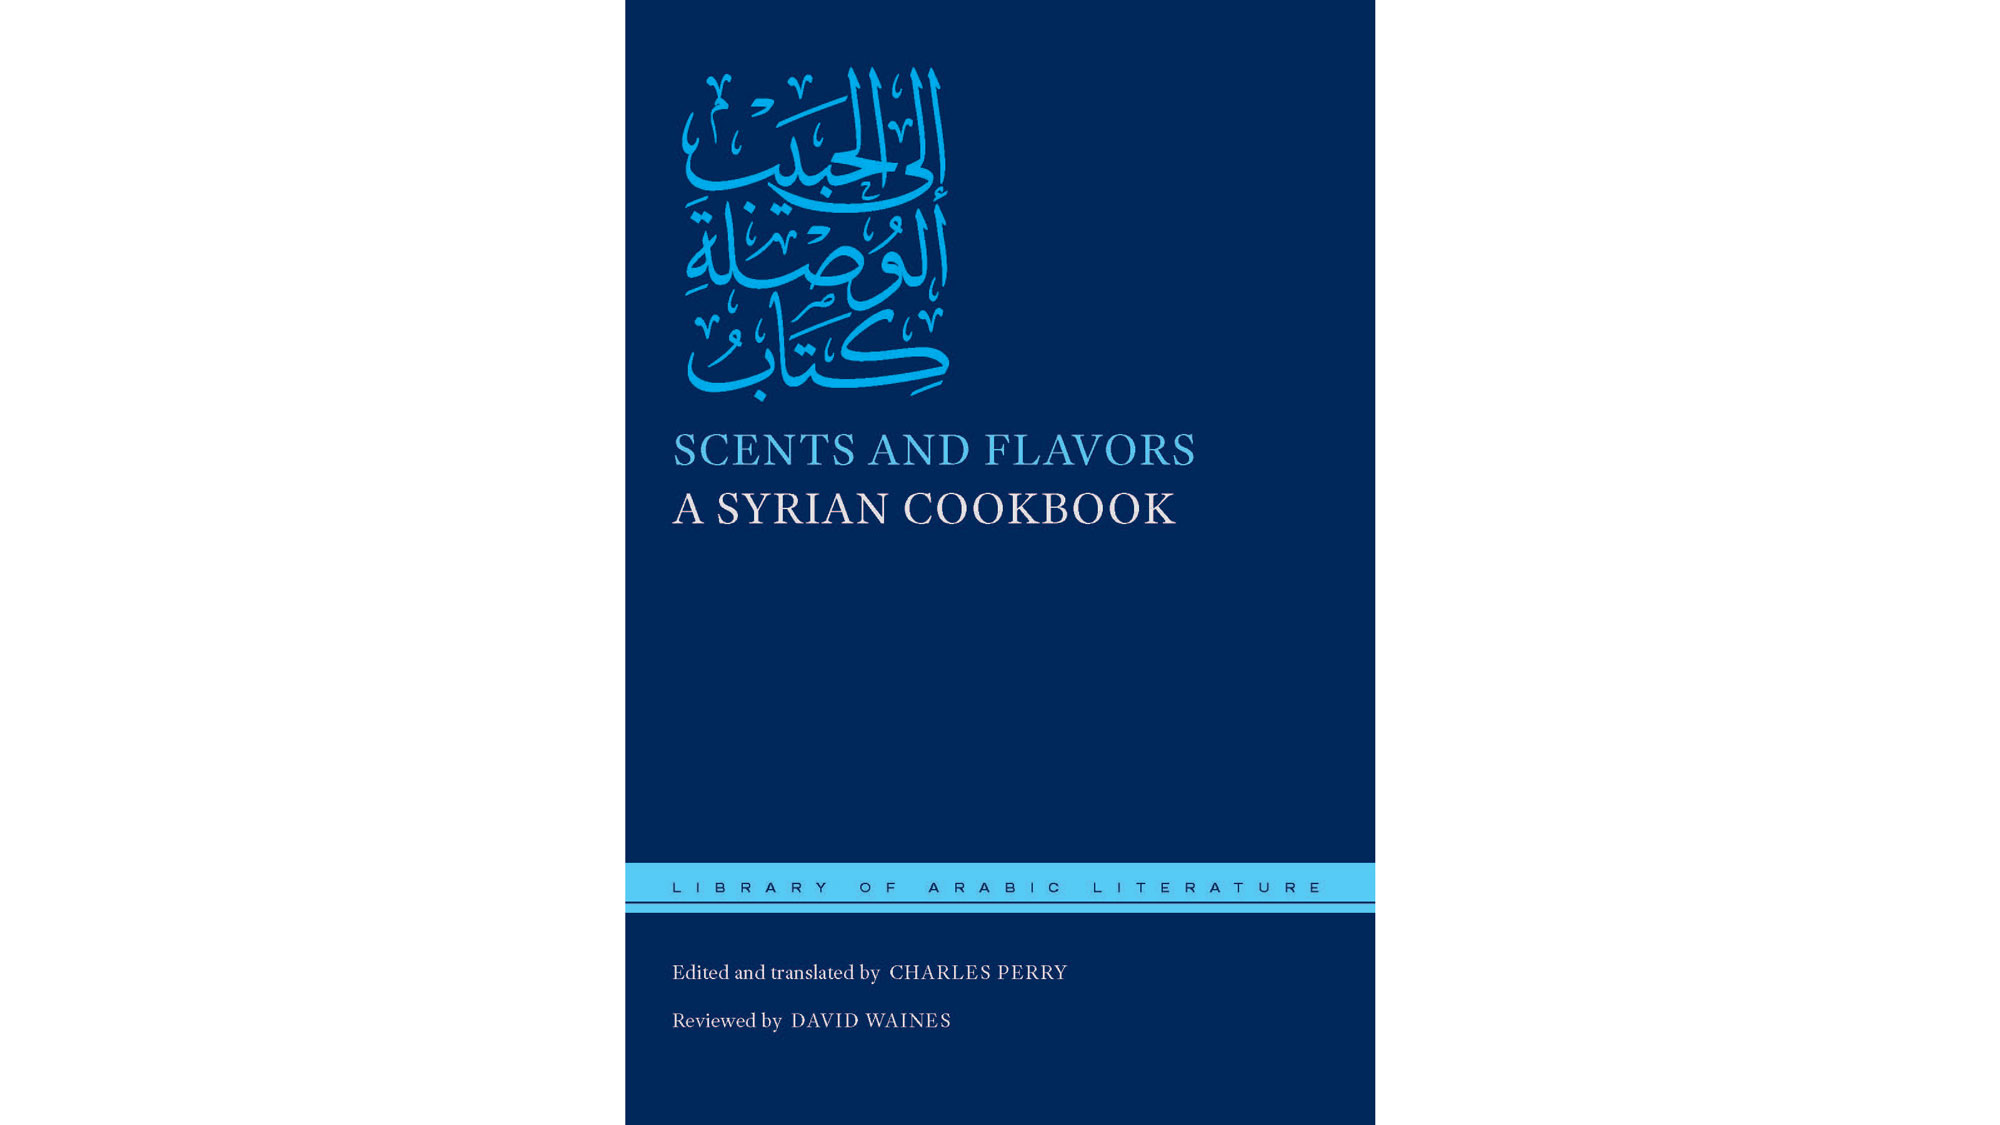 Scents and Flavors: A Syrian Cookbook